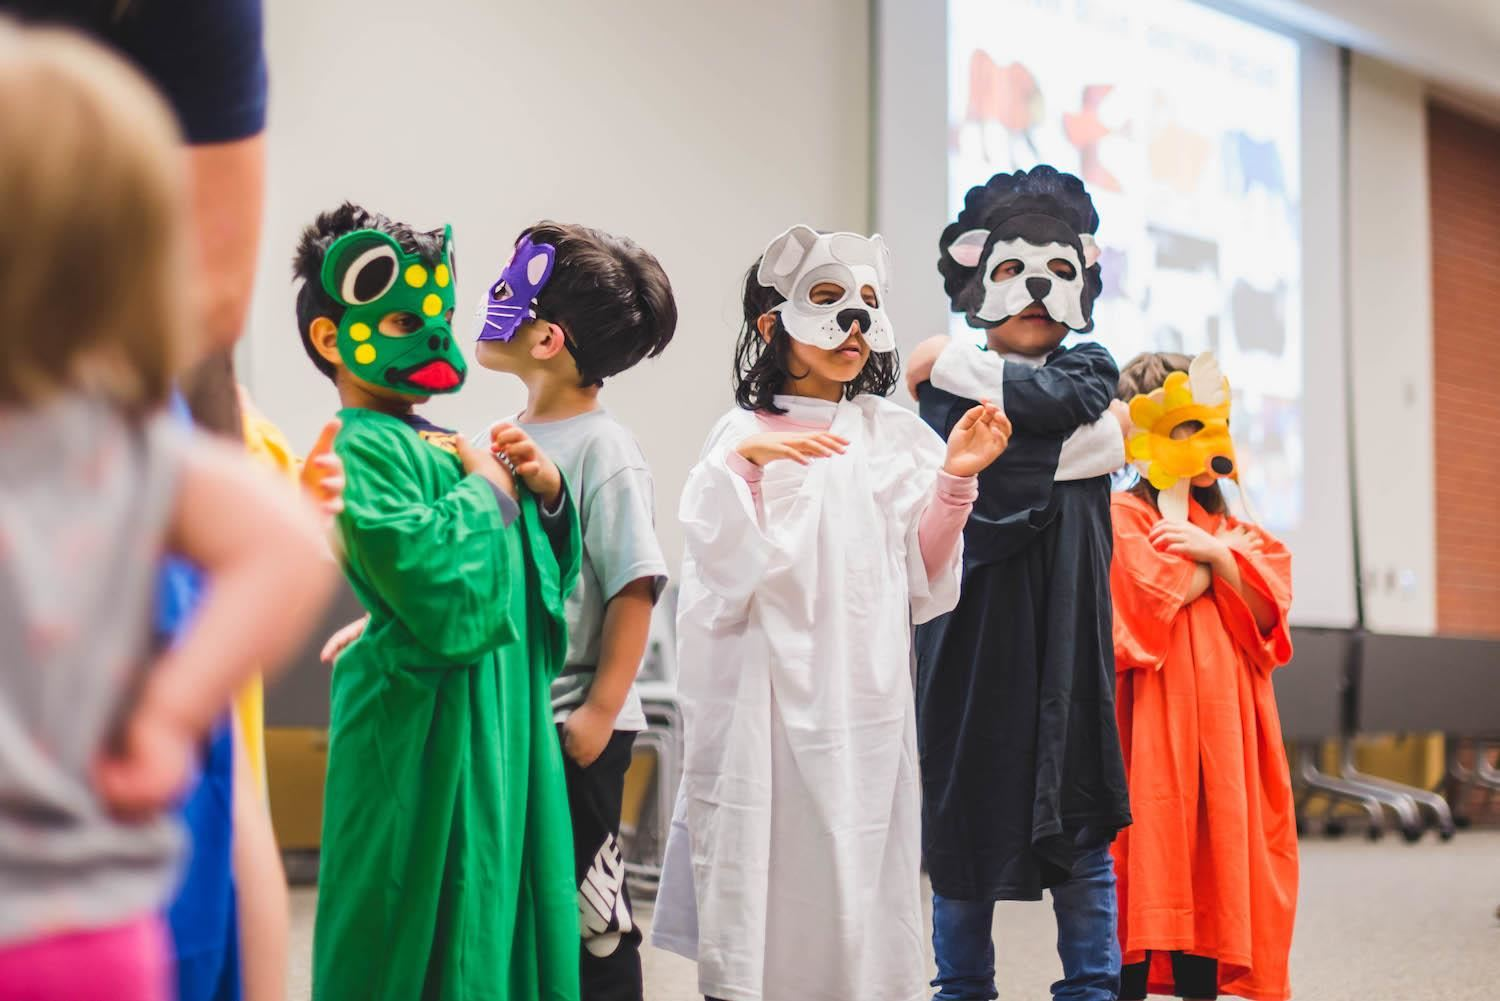 Students dressed up as animals with masks